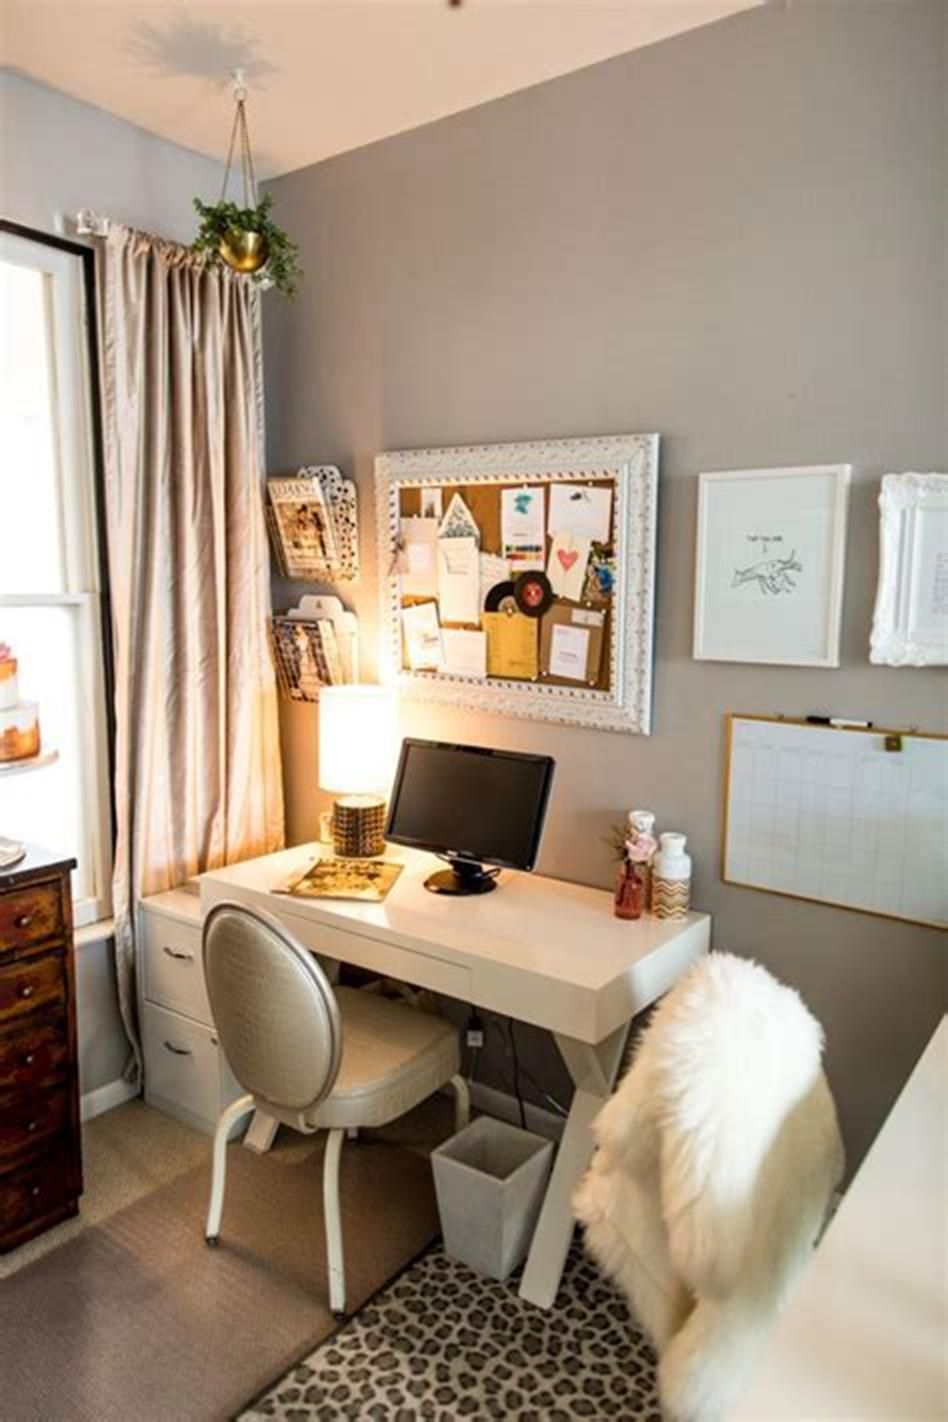 50 Best Small Space Office Decorating Ideas On A Budget 2019 24 Small Space Office Living Room Office Small Bedroom Office